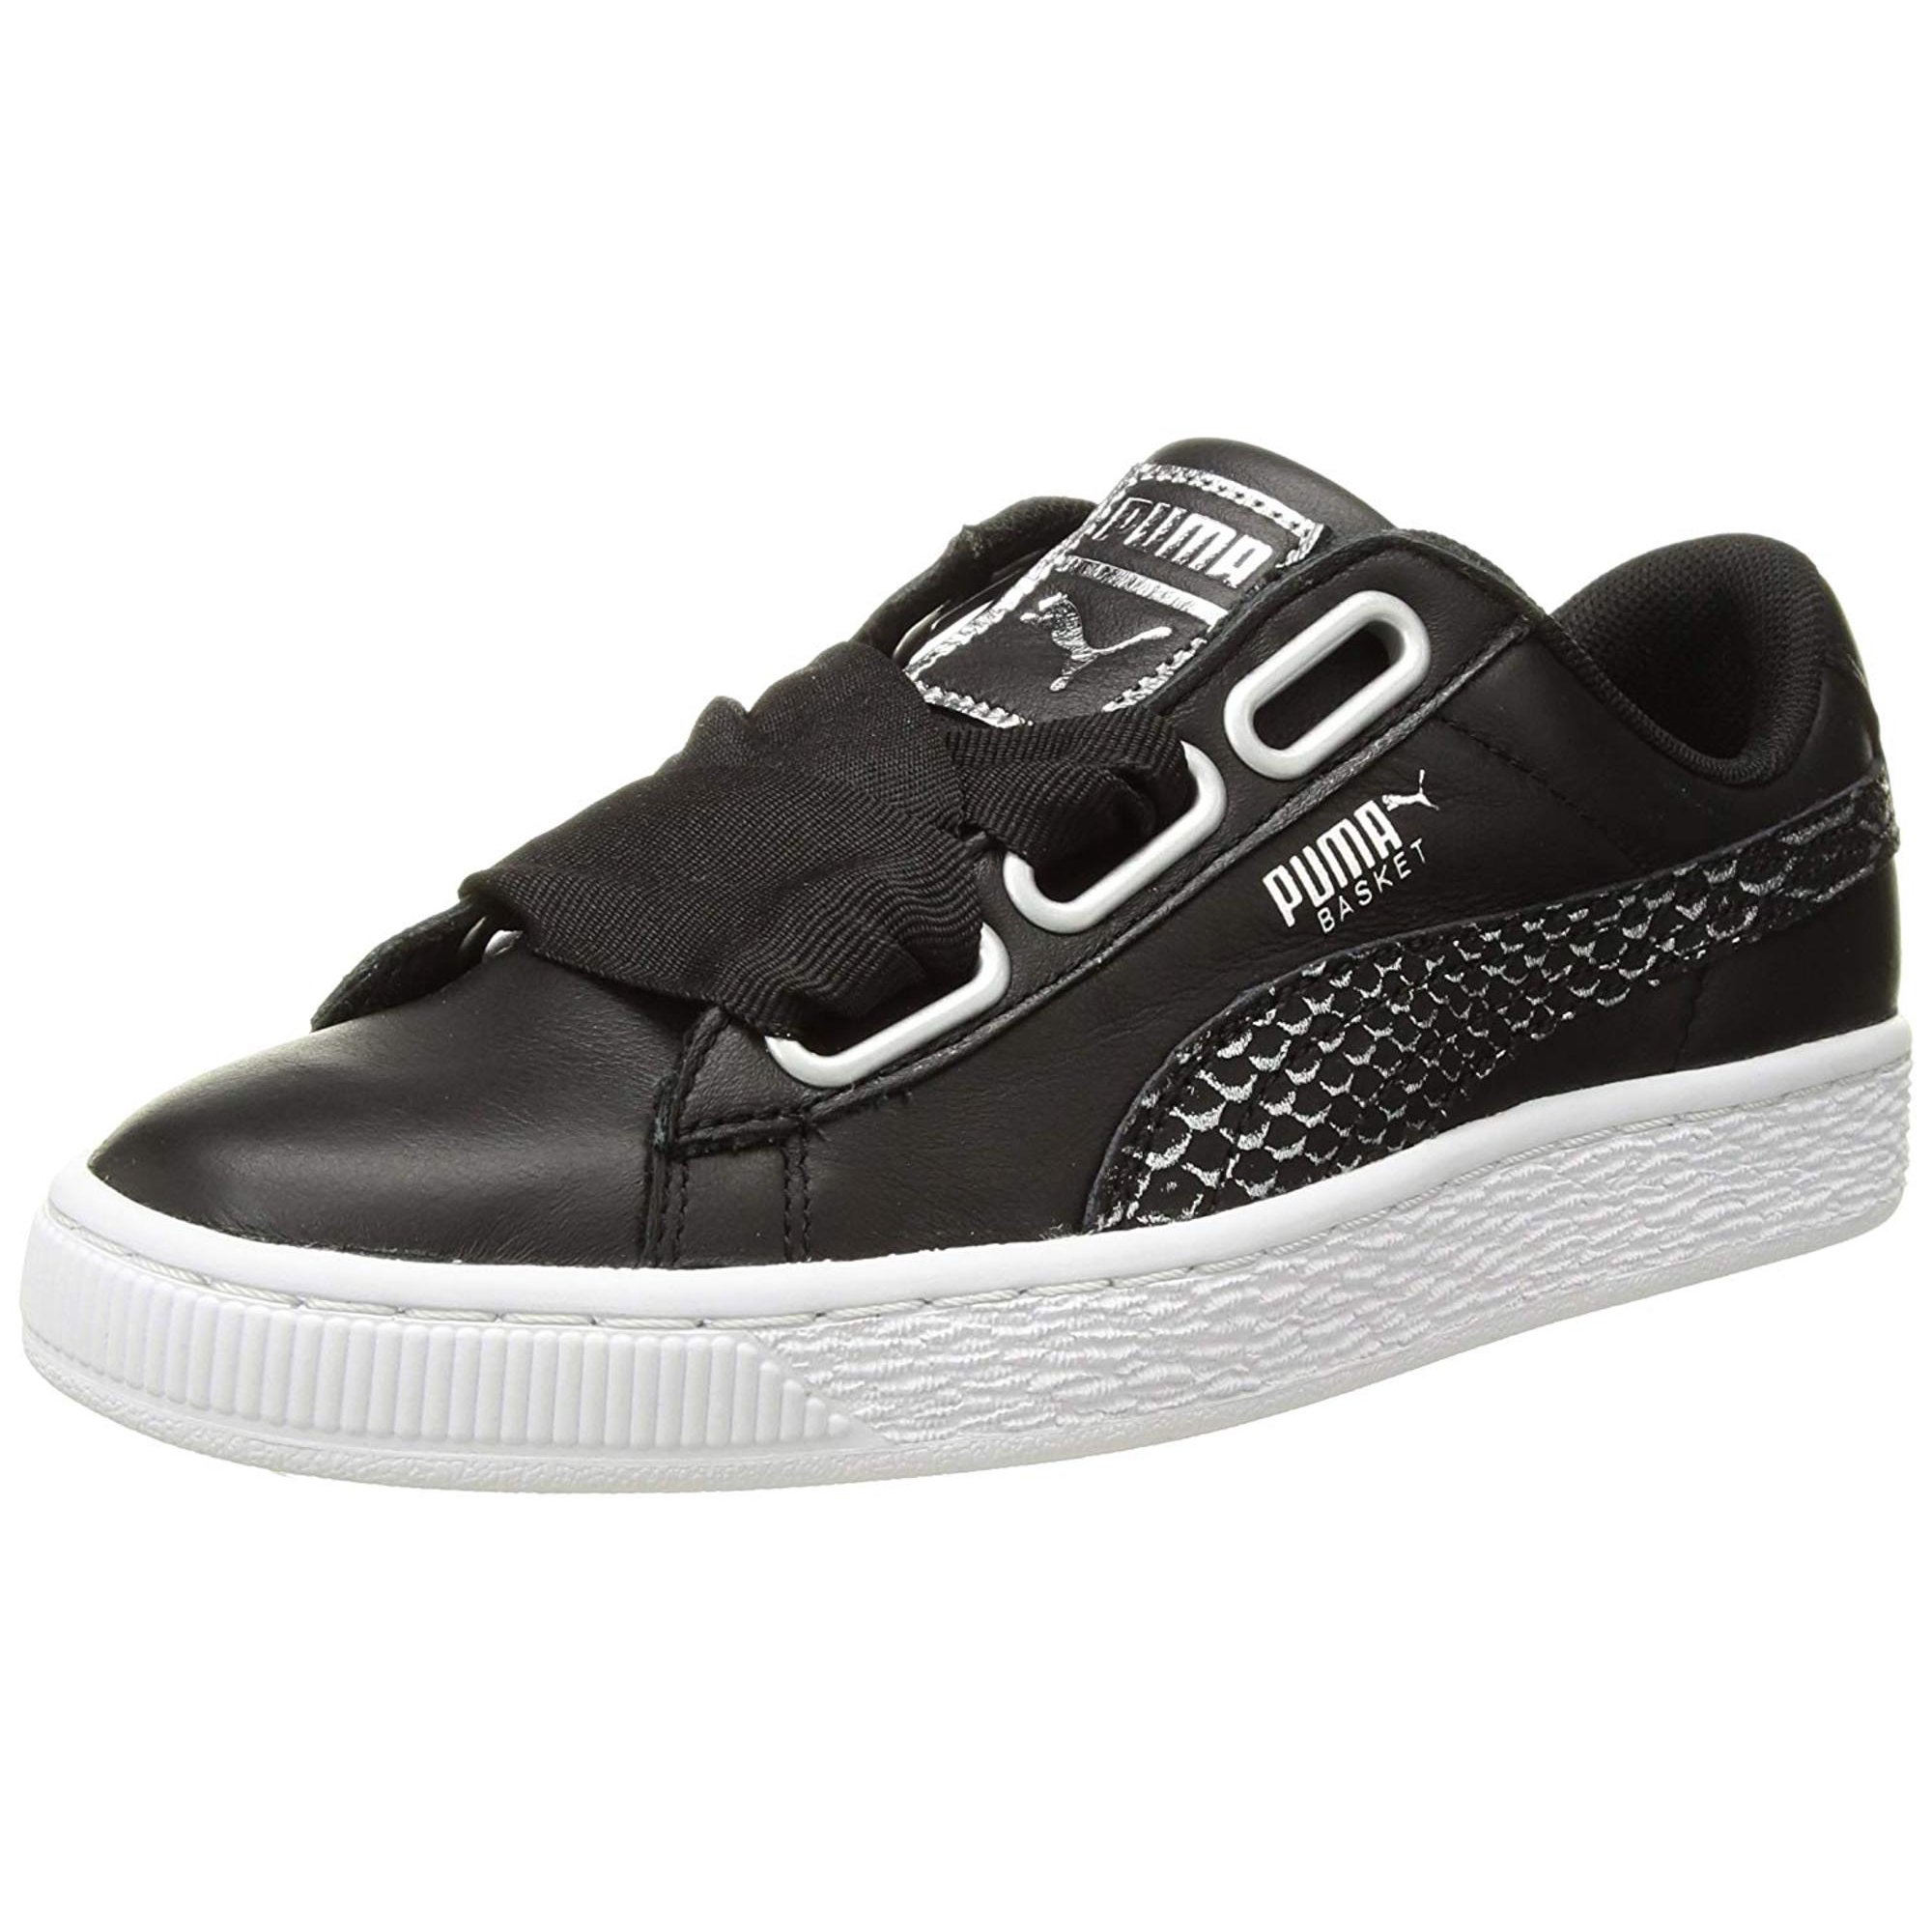 sports shoes 1fb83 96630 Puma Womens Basket Heart Oceanaire Low Top Lace Up Fashion ...